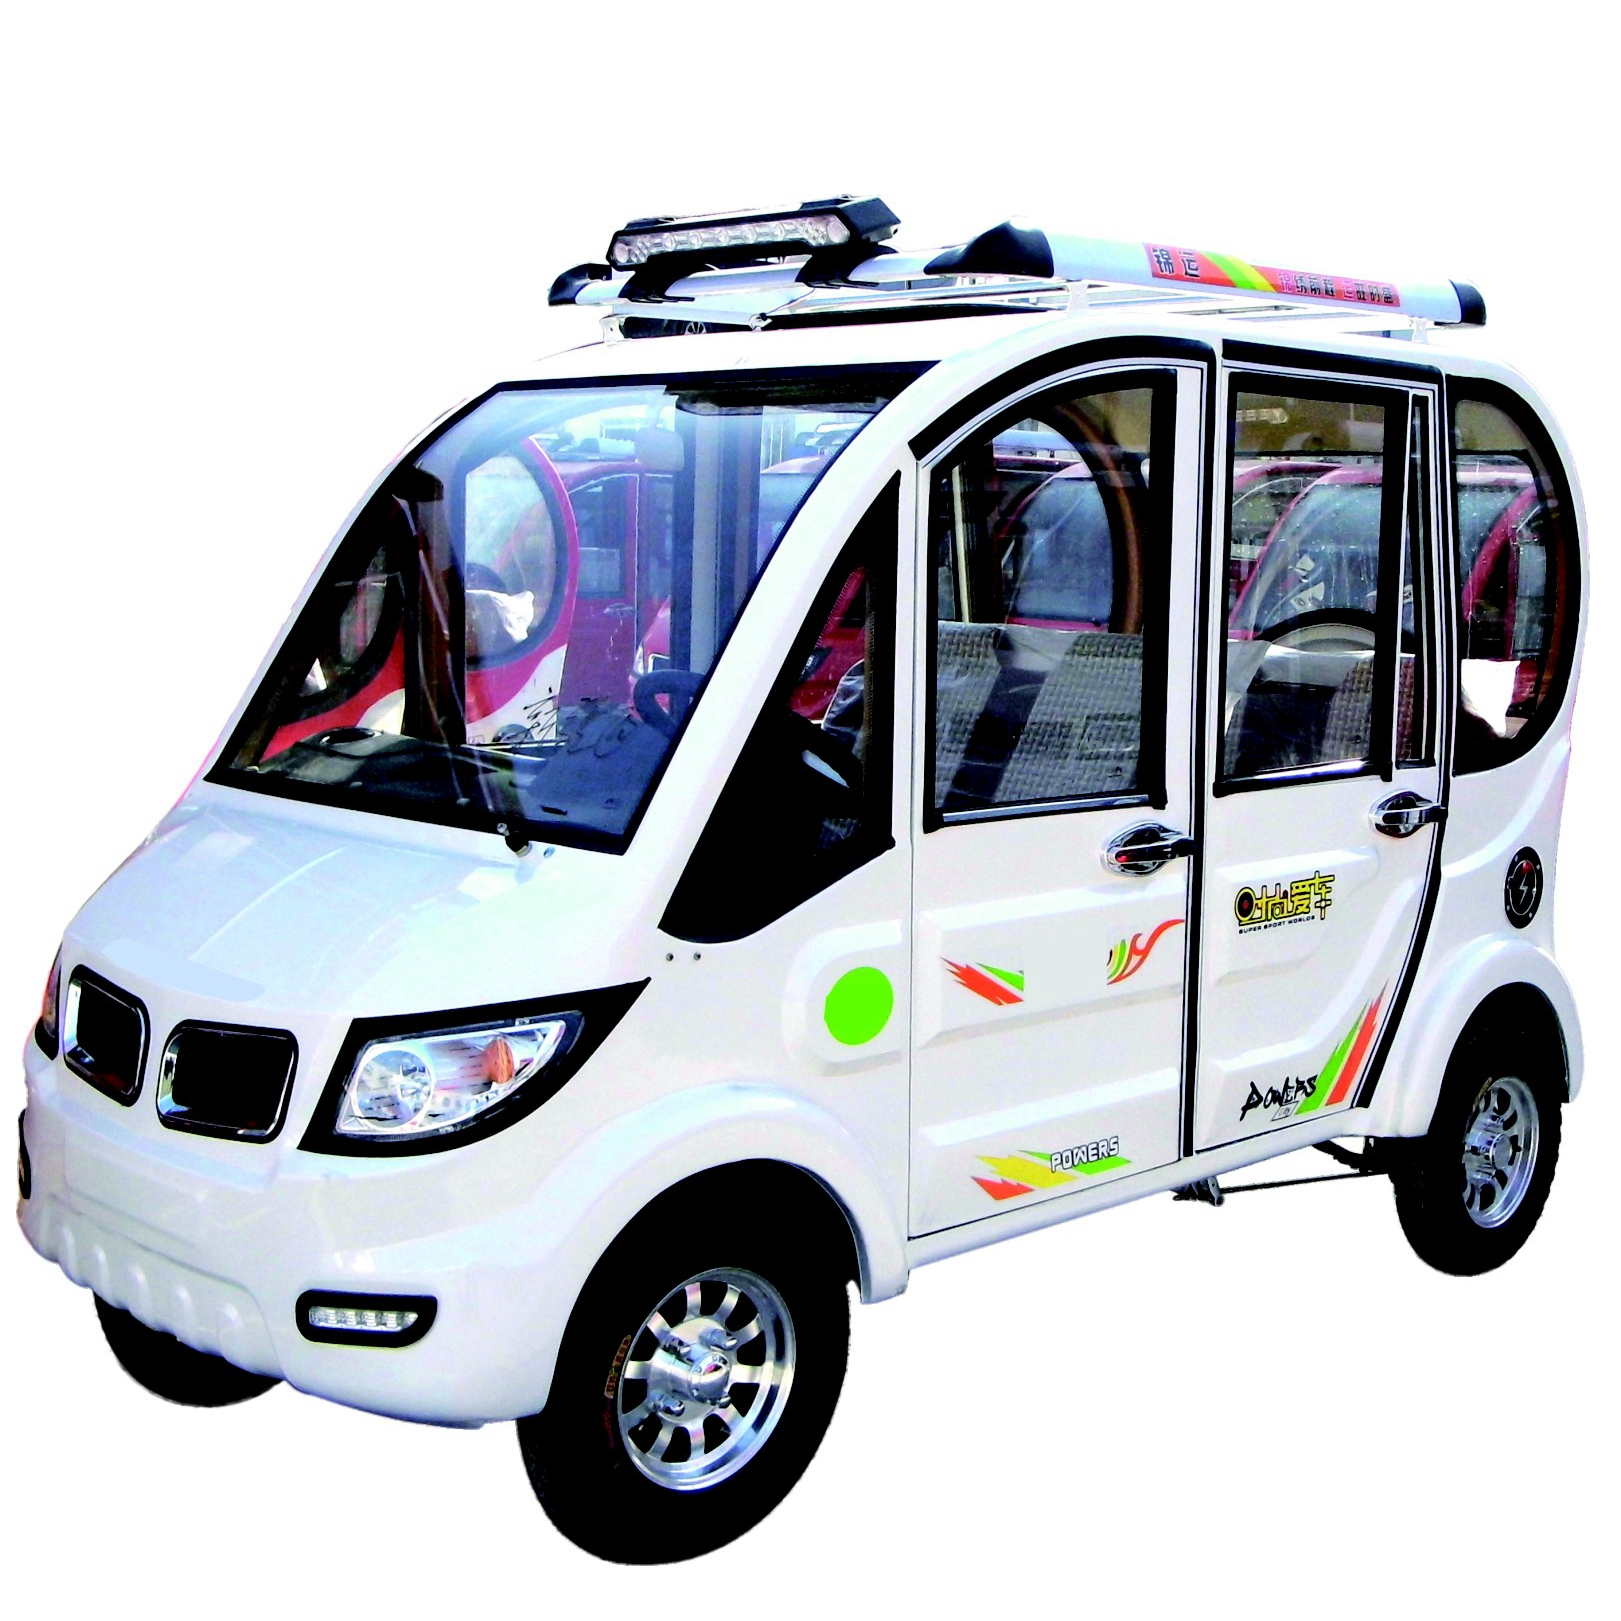 Small electric tourist passenger bus 3 wheeled tricycles rickshaw